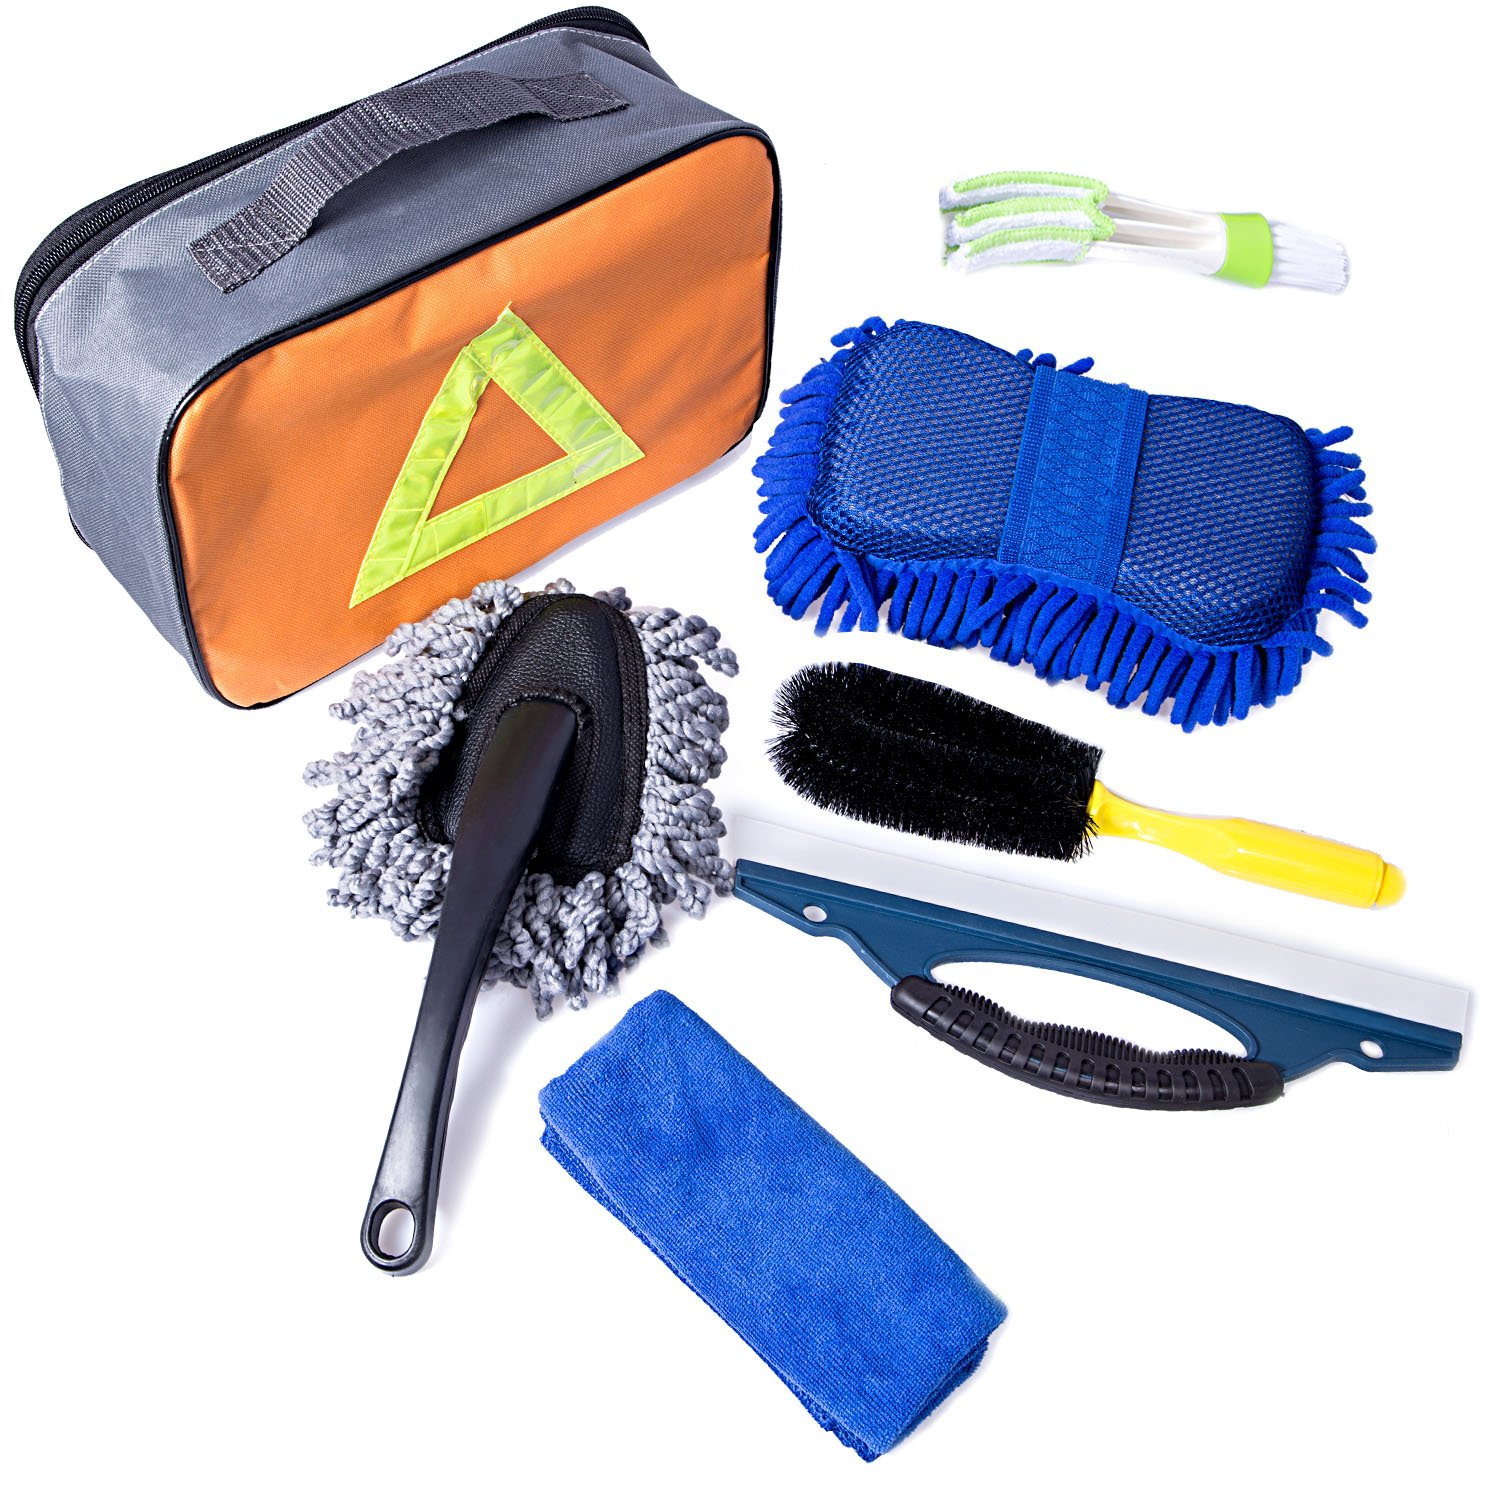 Car Washing Cleanning Tools Kit with Bag - Tire Brush | Chenille Wash Sponge | Duster | Window Water Scraper | Wash Cloth | Double Head Car Vent Brush